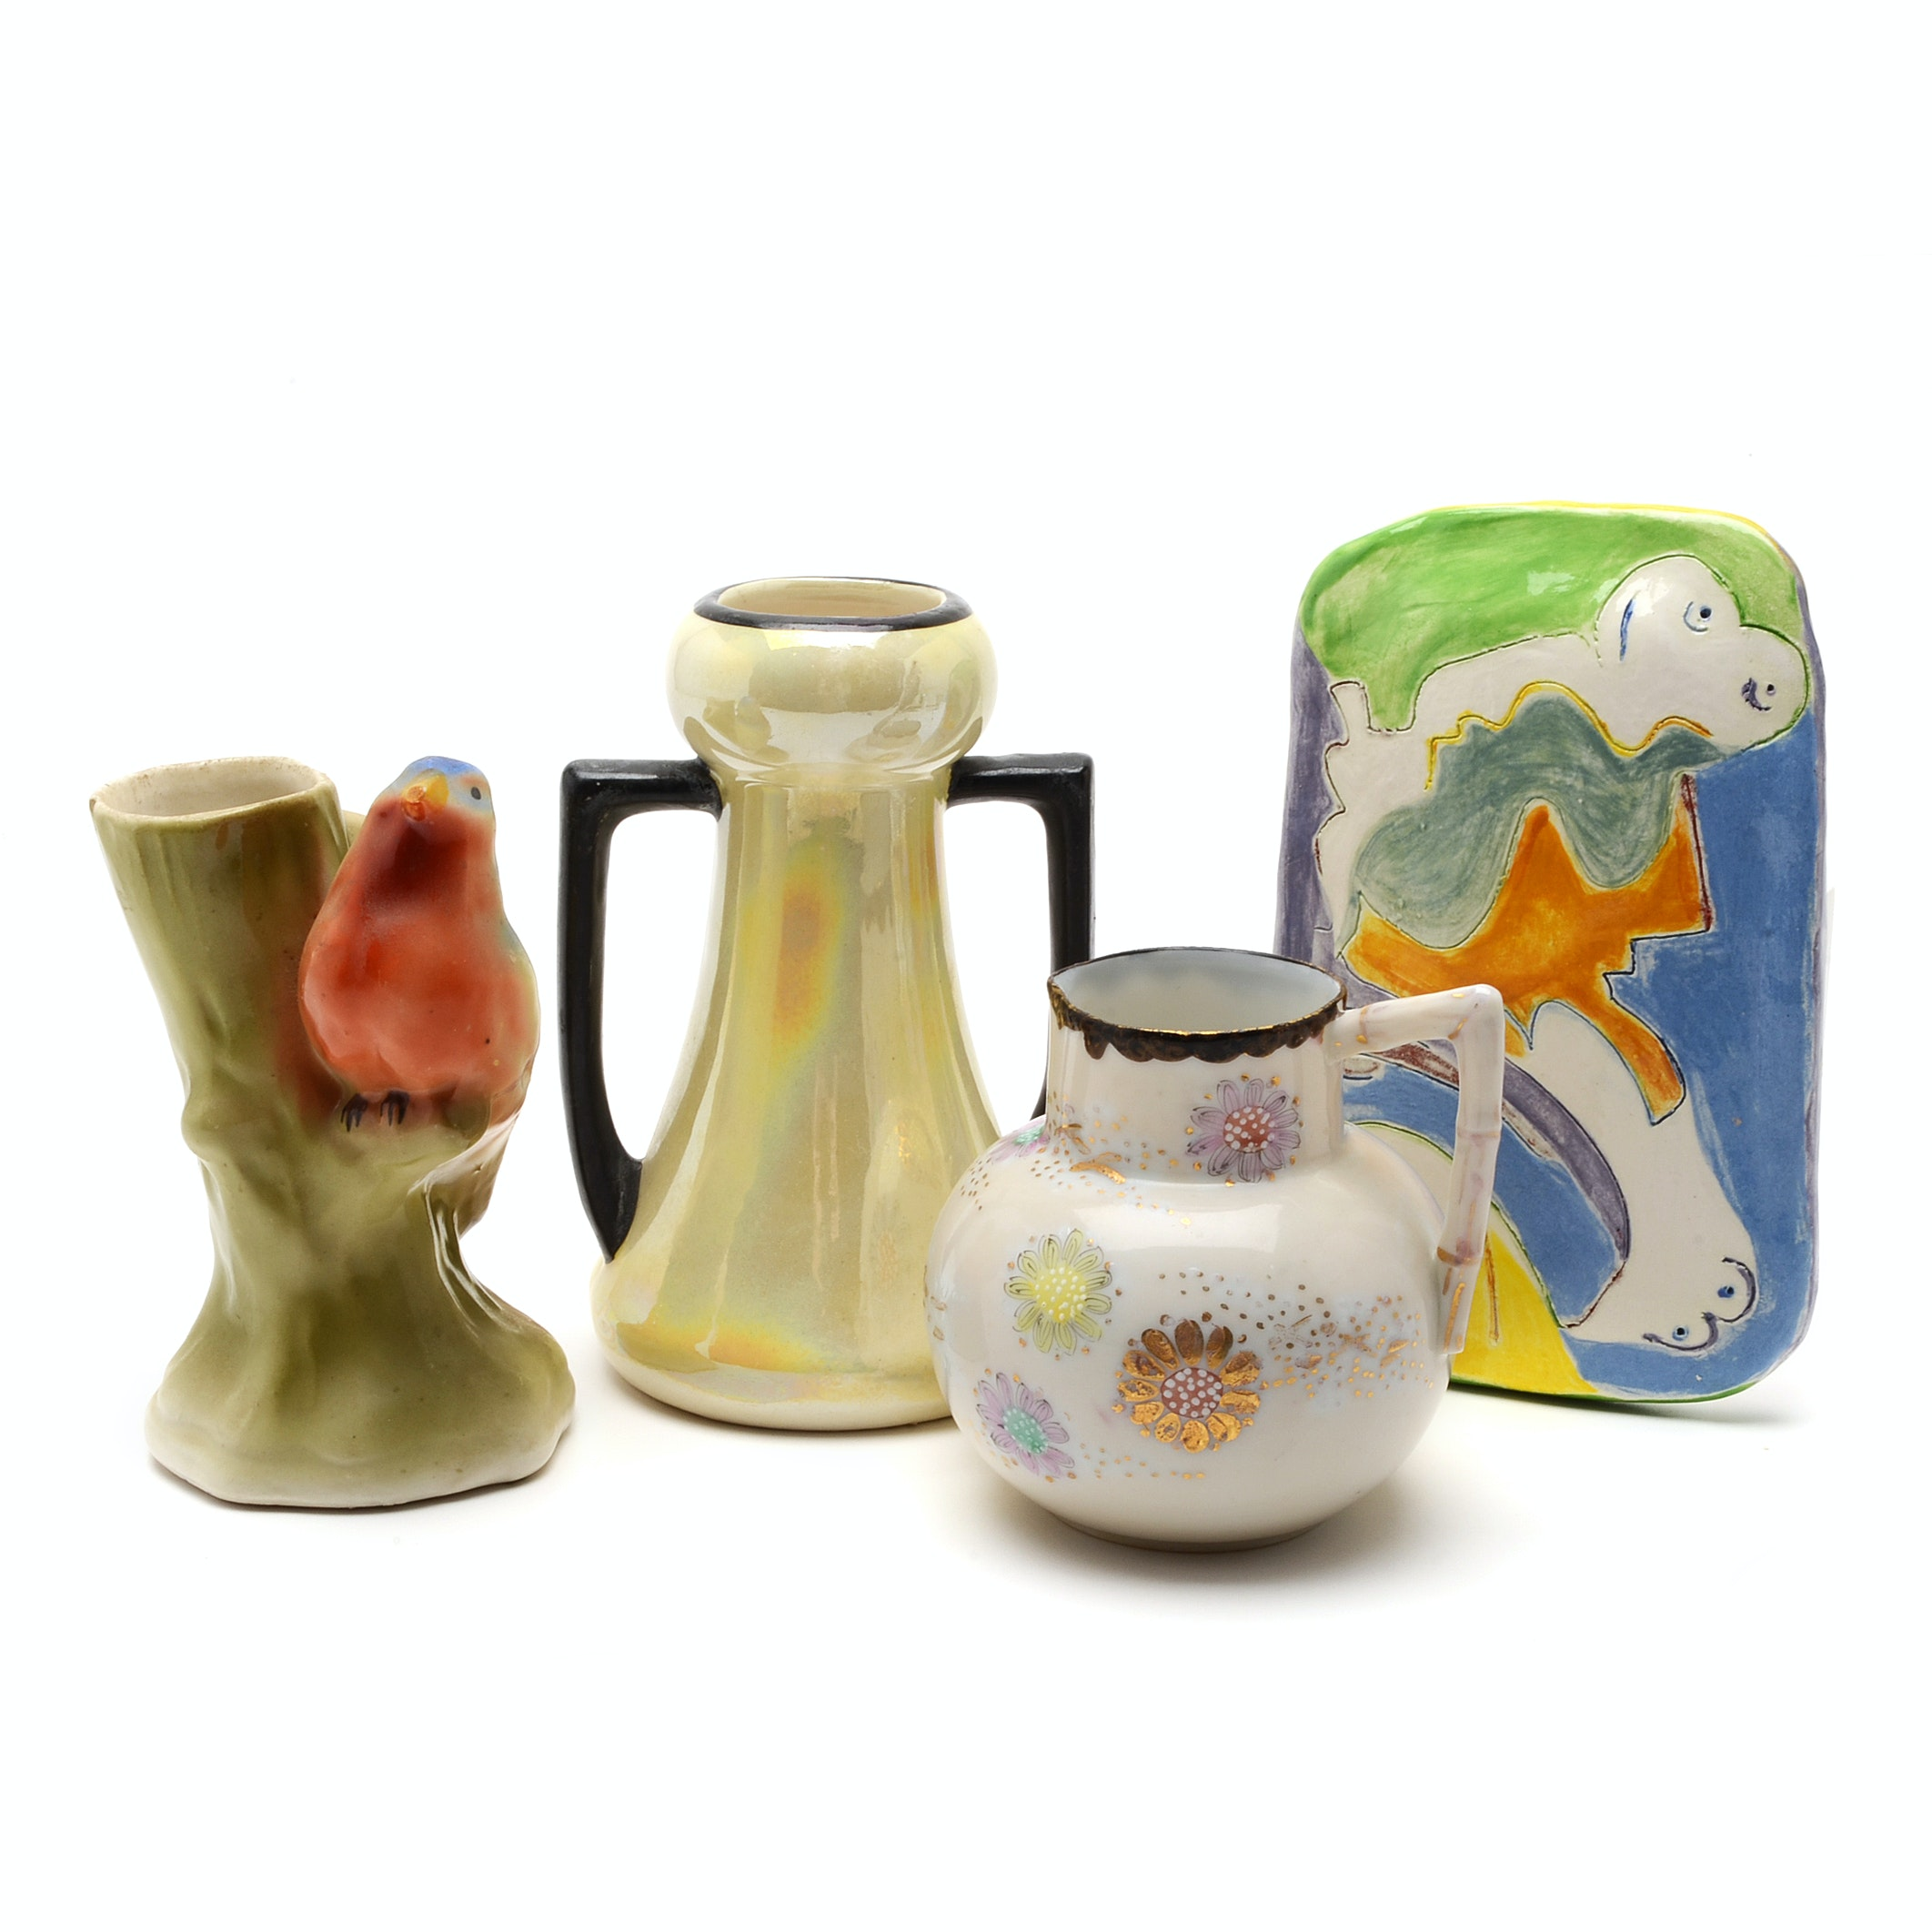 Vintage  Ceramic, Porcelain, Pottery and Glass Decorative Items